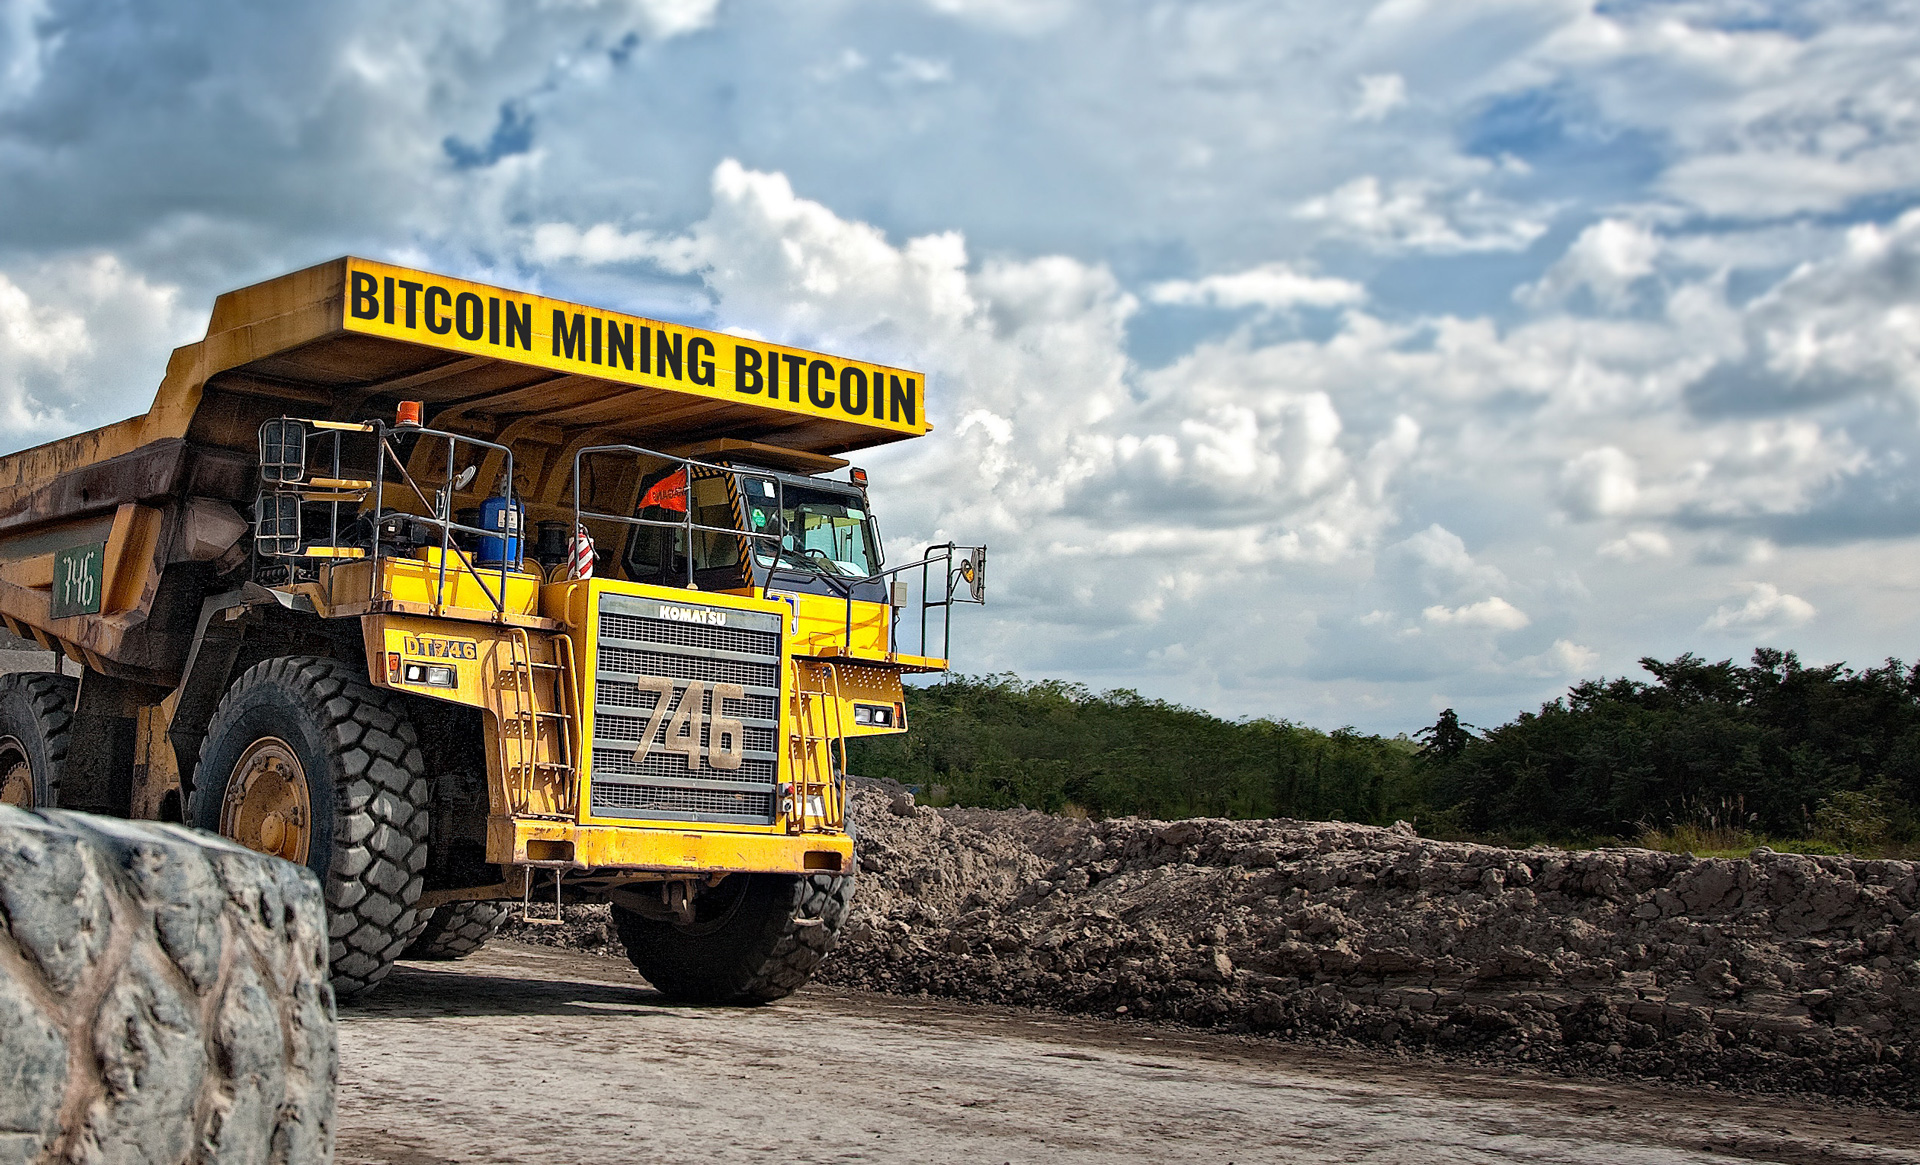 BTC mining brings losses: is it dangerous for all Crypto?